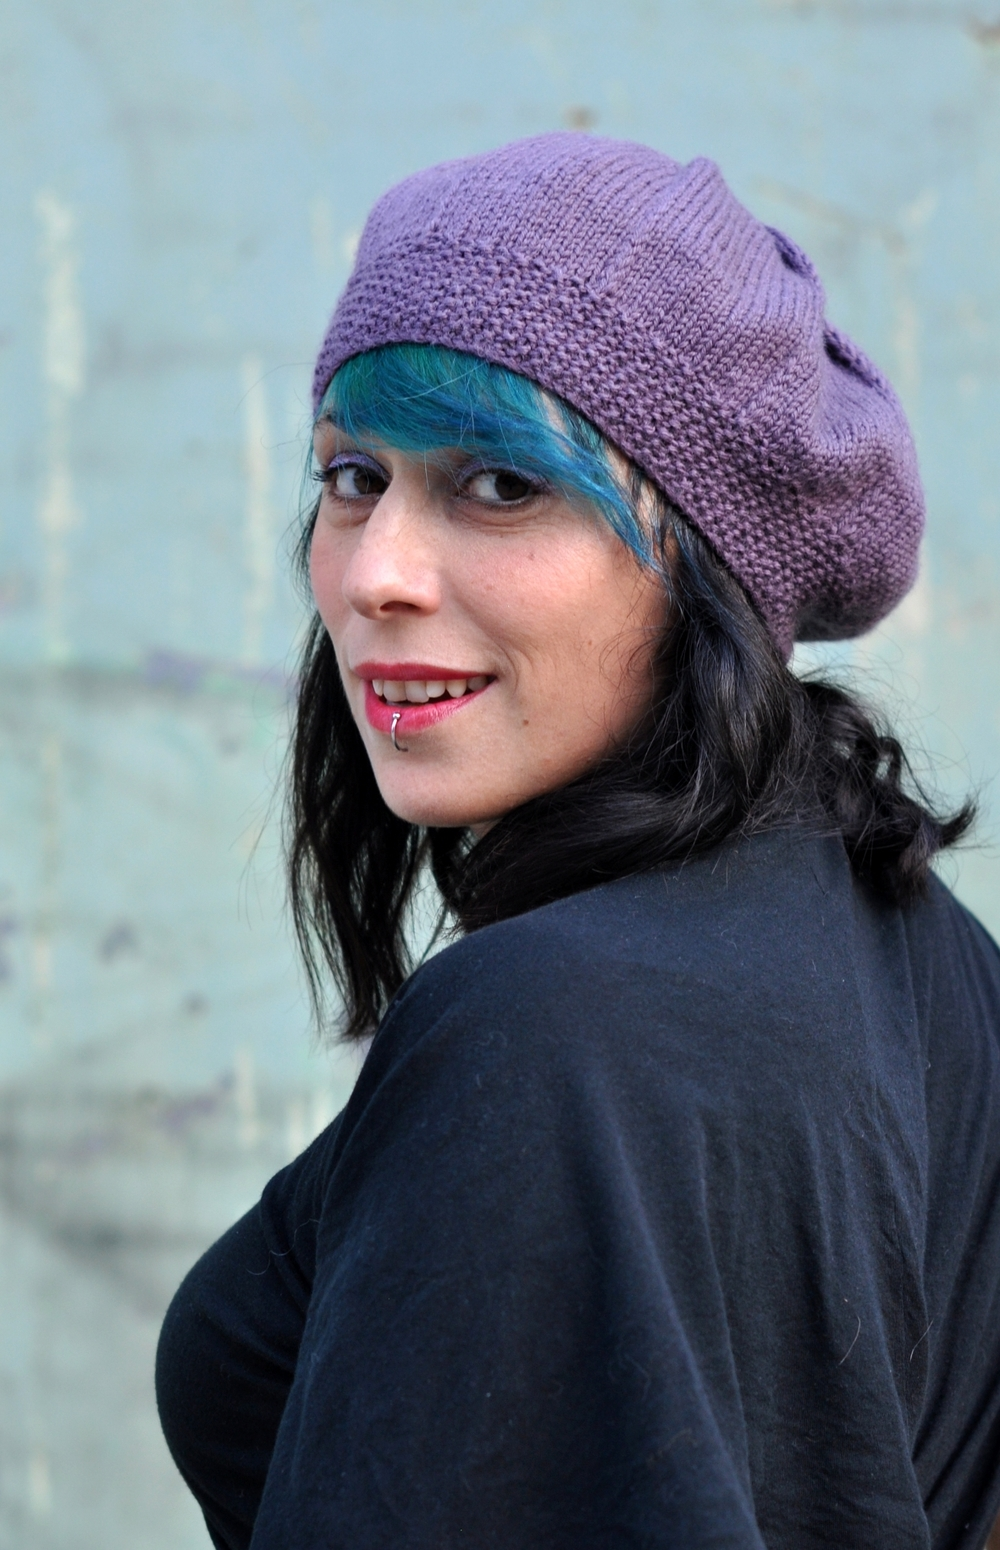 hand knitting patterns for berets and tams — Woolly Wormhead